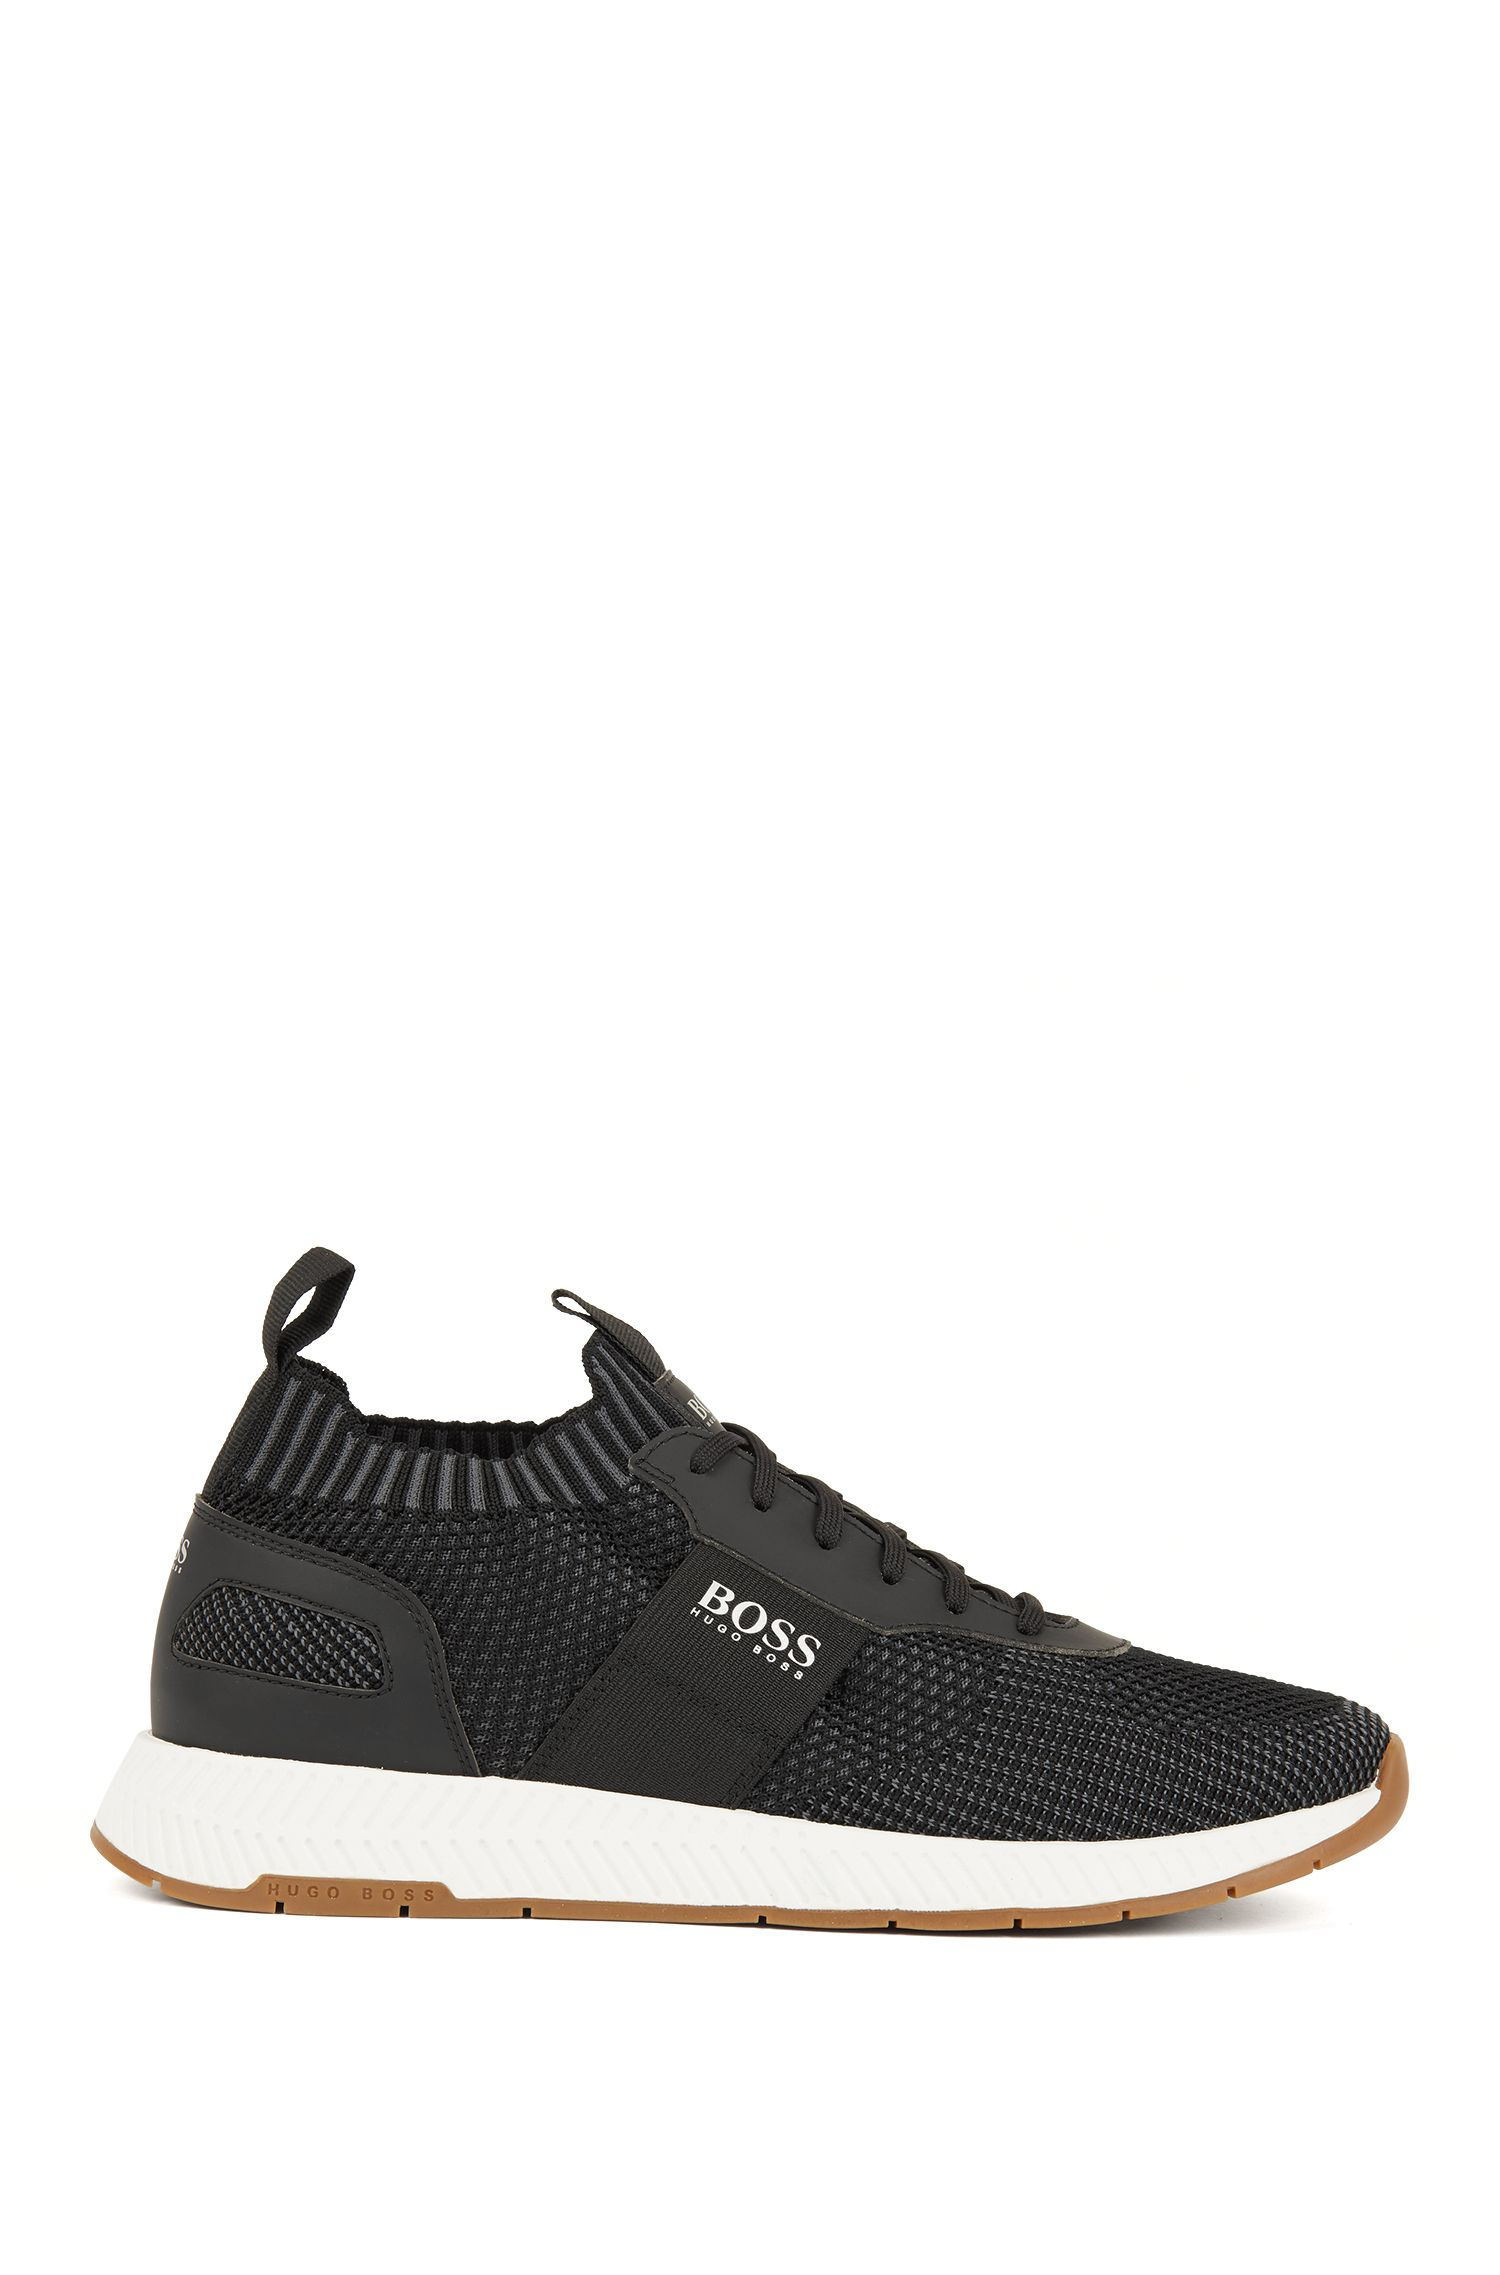 Running-inspired sneakers with laces and knitted uppers, Black